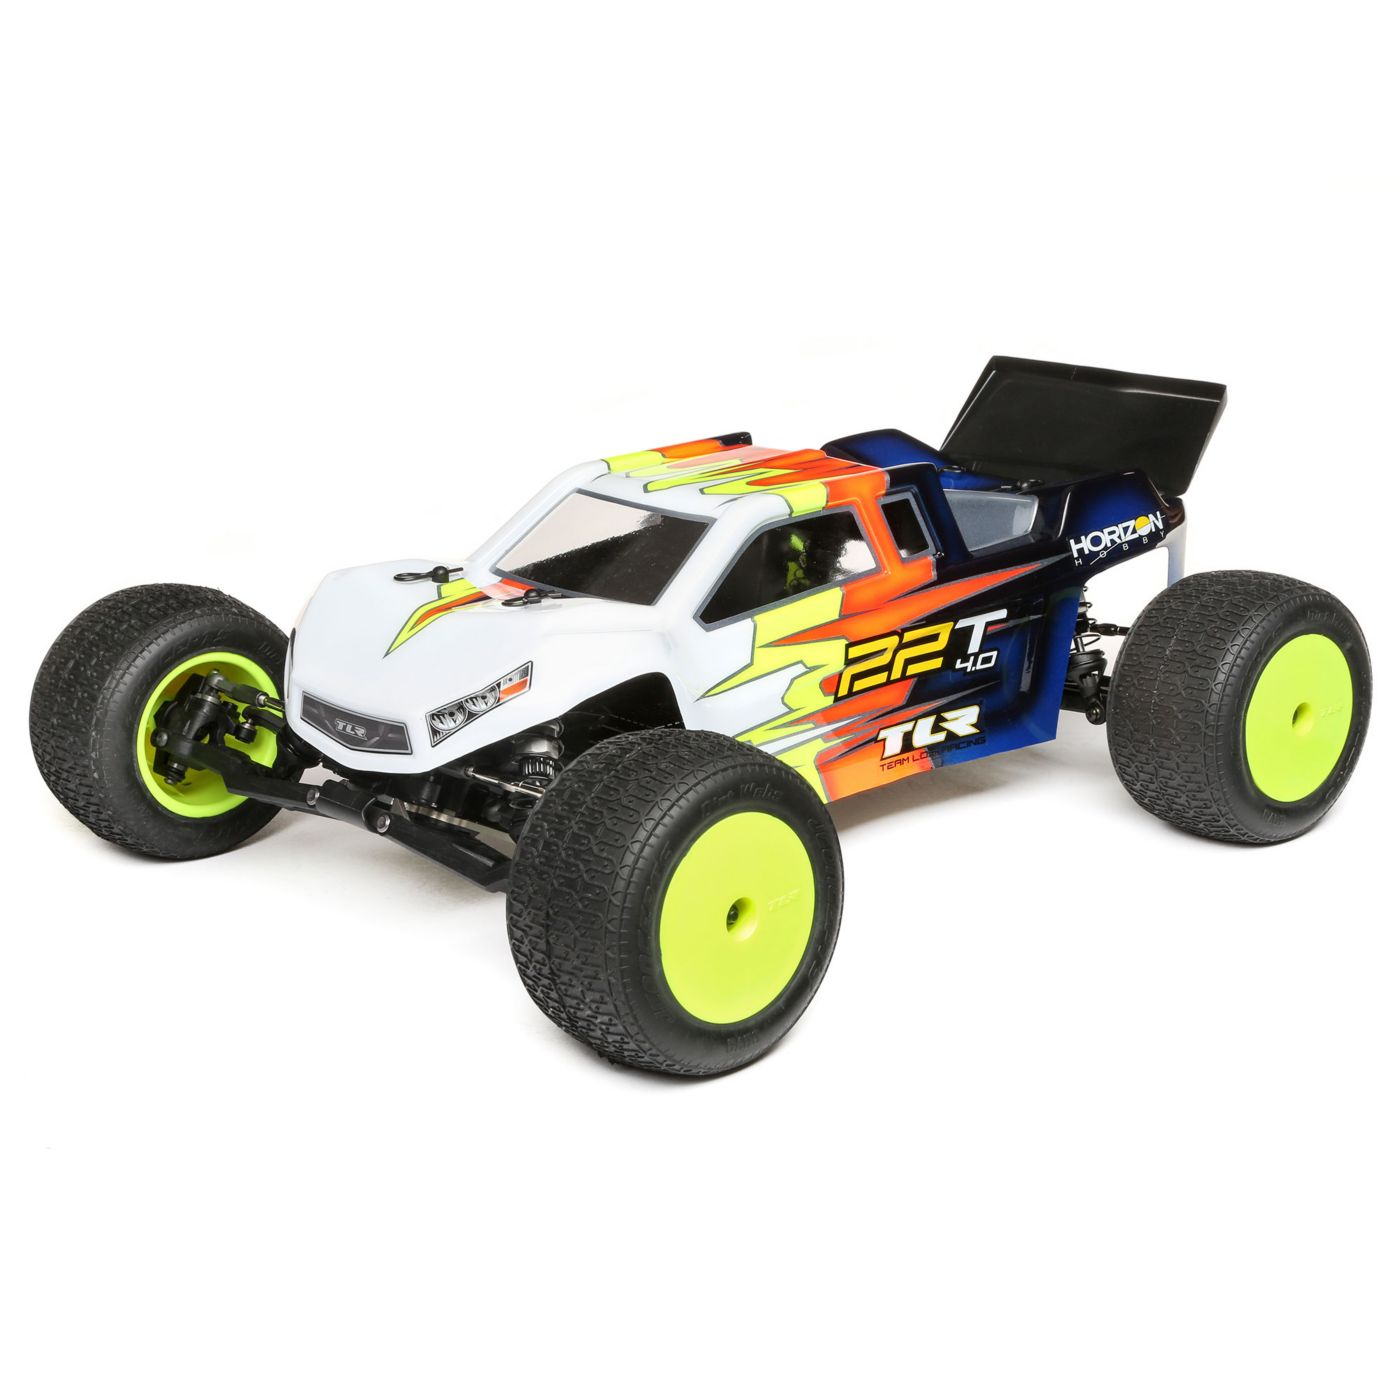 Evolution of Speed Team Losi Racing s 22T 4 0 Stadium Race Truck Kit